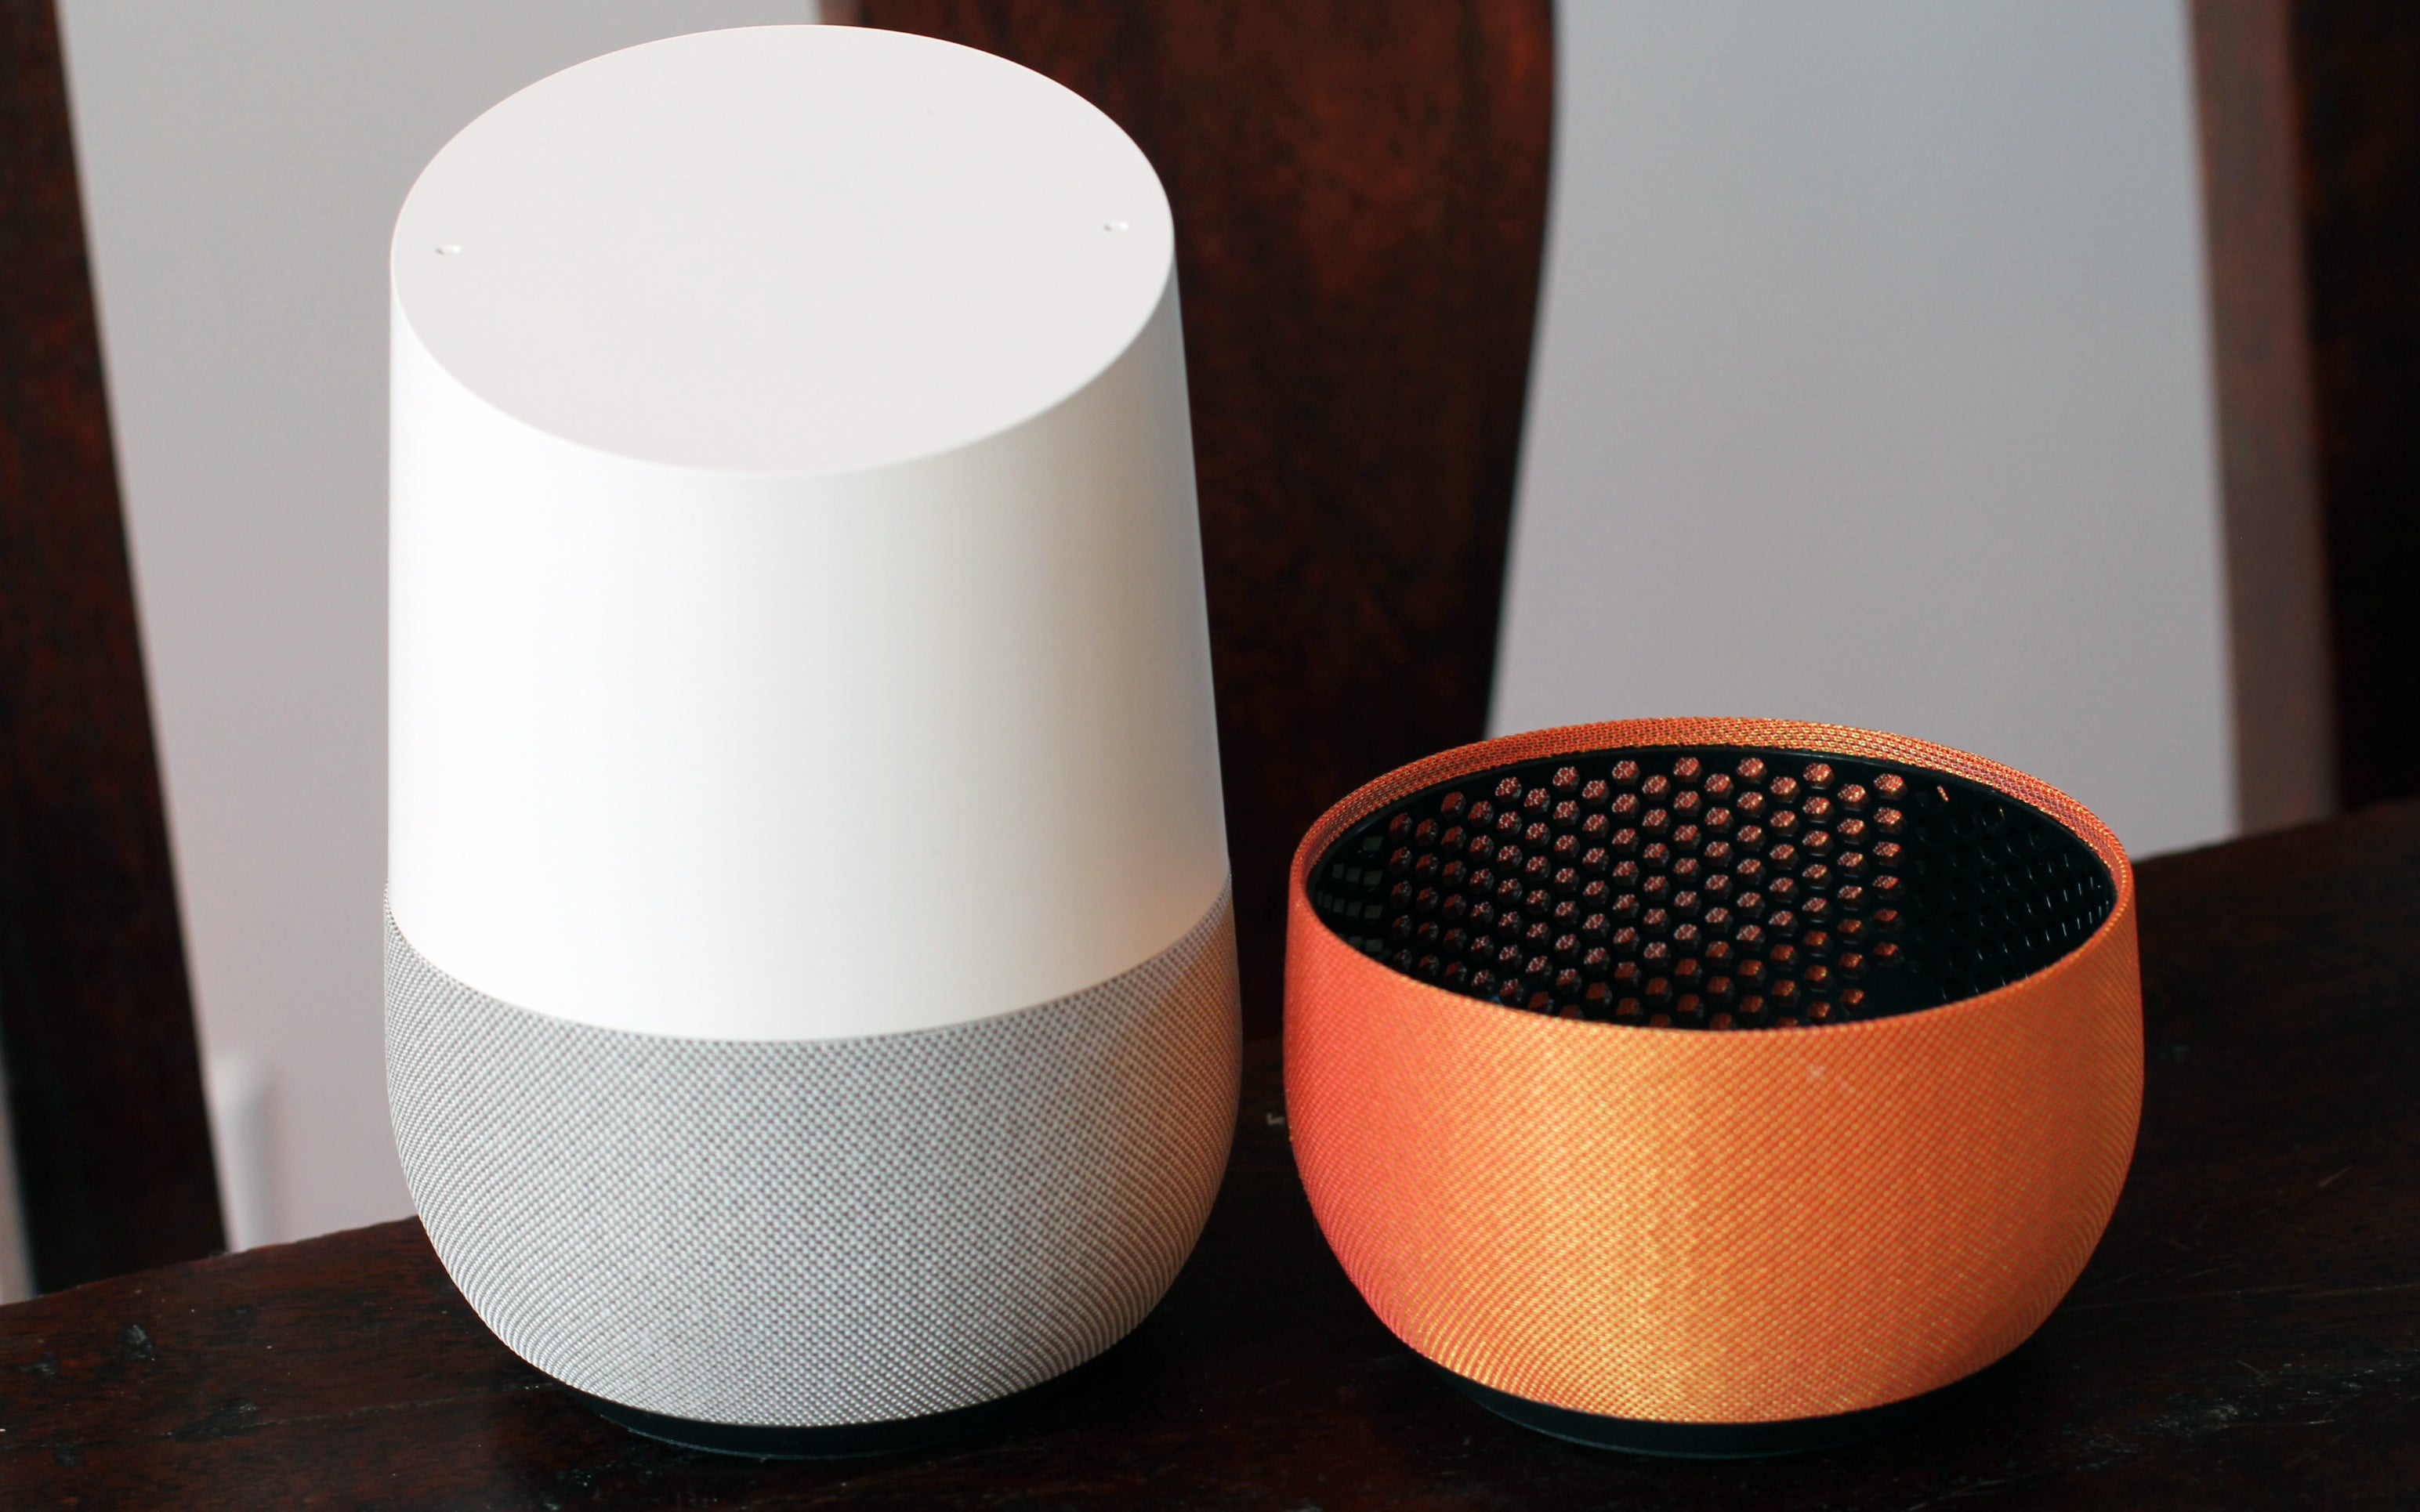 Merveilleux Google Home Review: Google Puts Its A.I. On A Nightstand For The Win